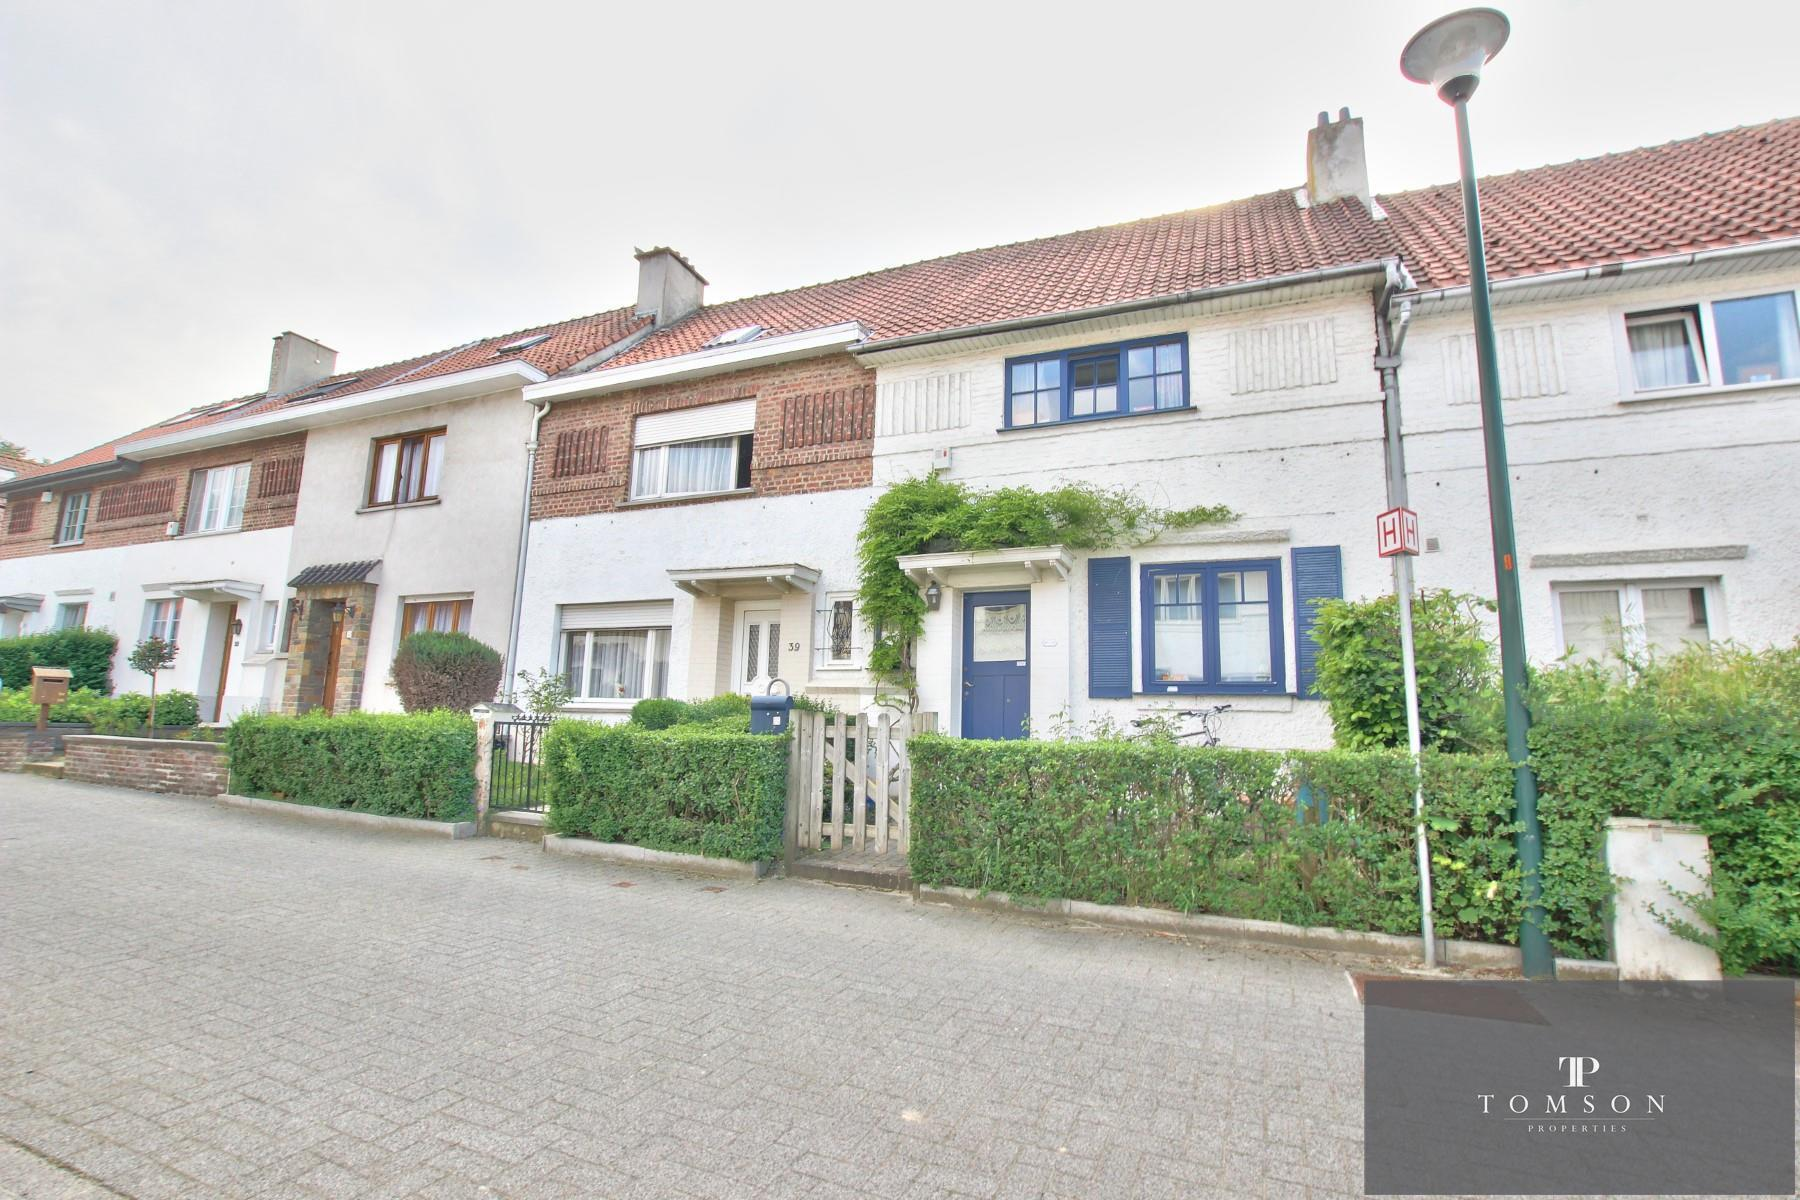 House - Woluwe-Saint-Pierre - #4021849-0